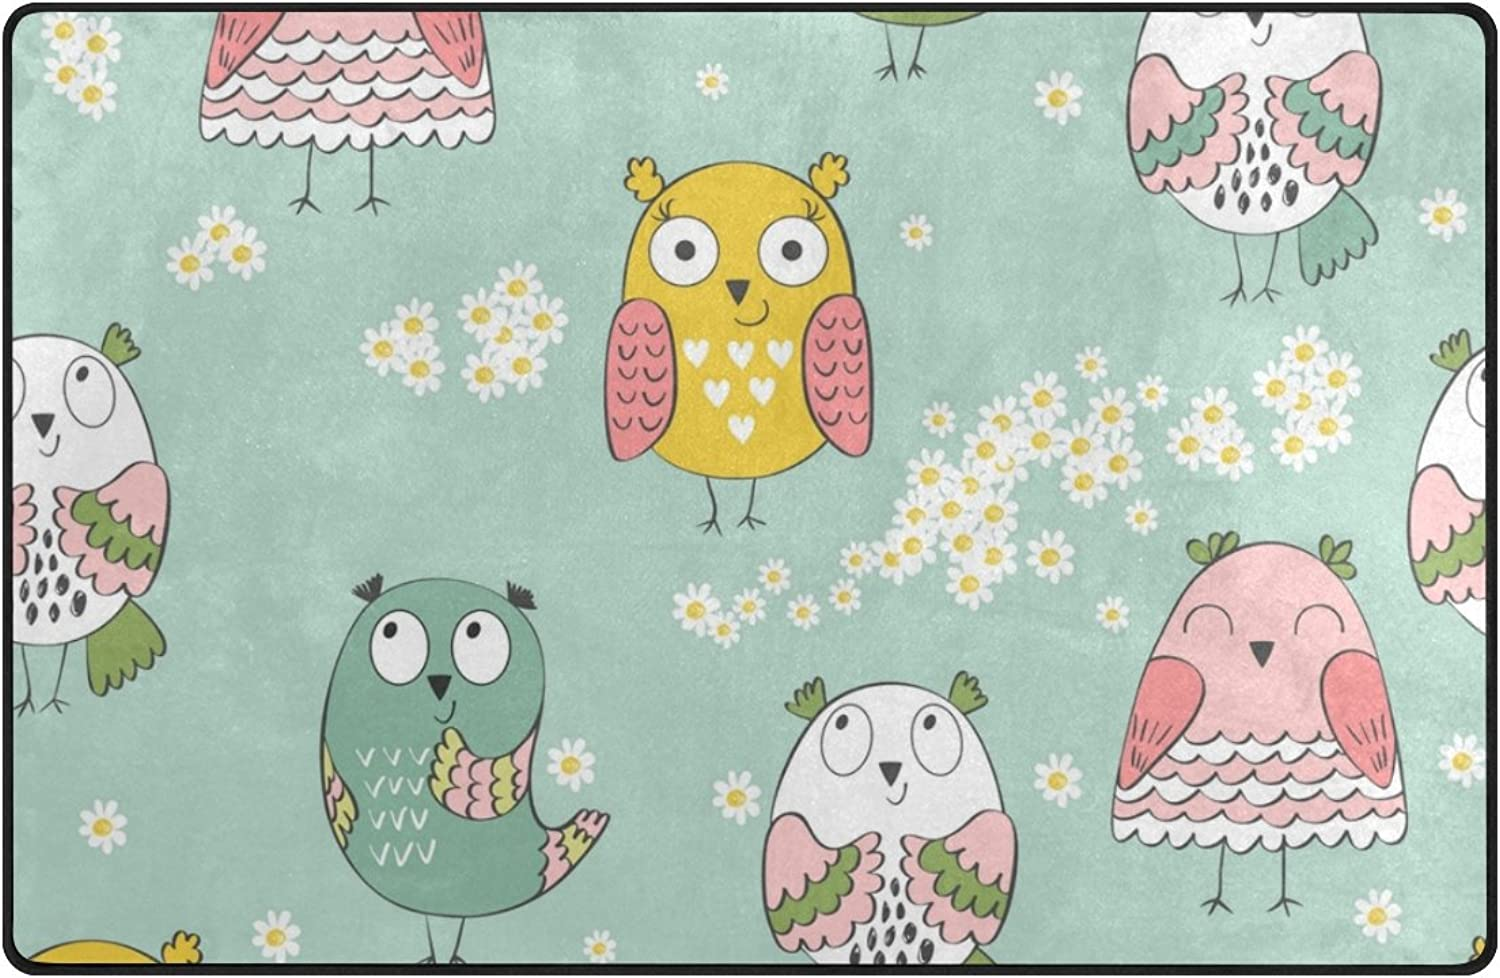 U Life Cute Cartoon Owls Floral Flower Large Doormats Area Rug Runner Floor Mat Carpet for Entrance Way Living Room Bedroom Kitchen Office 80 x 58 Inch